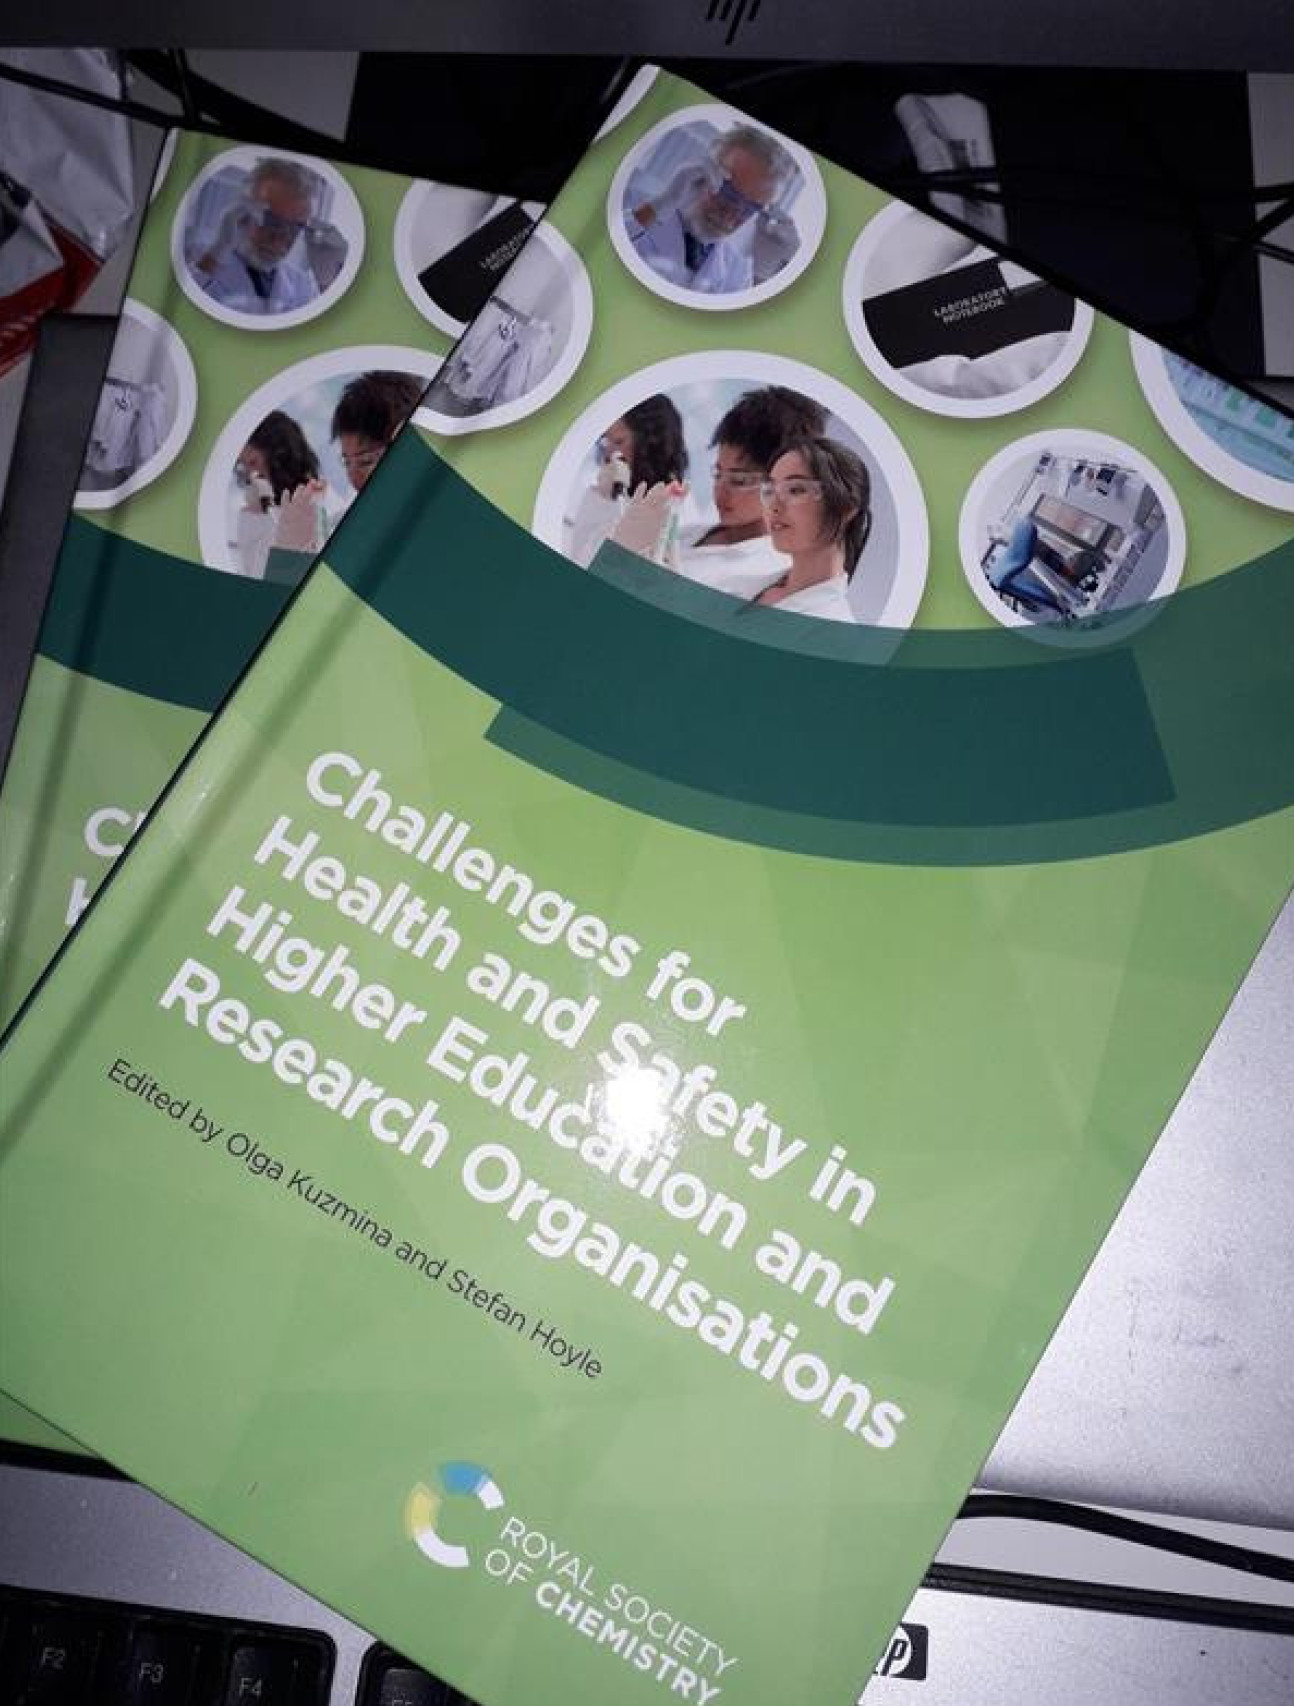 The 'Challenges for Health ad Safety in HE and Research Organisations' document